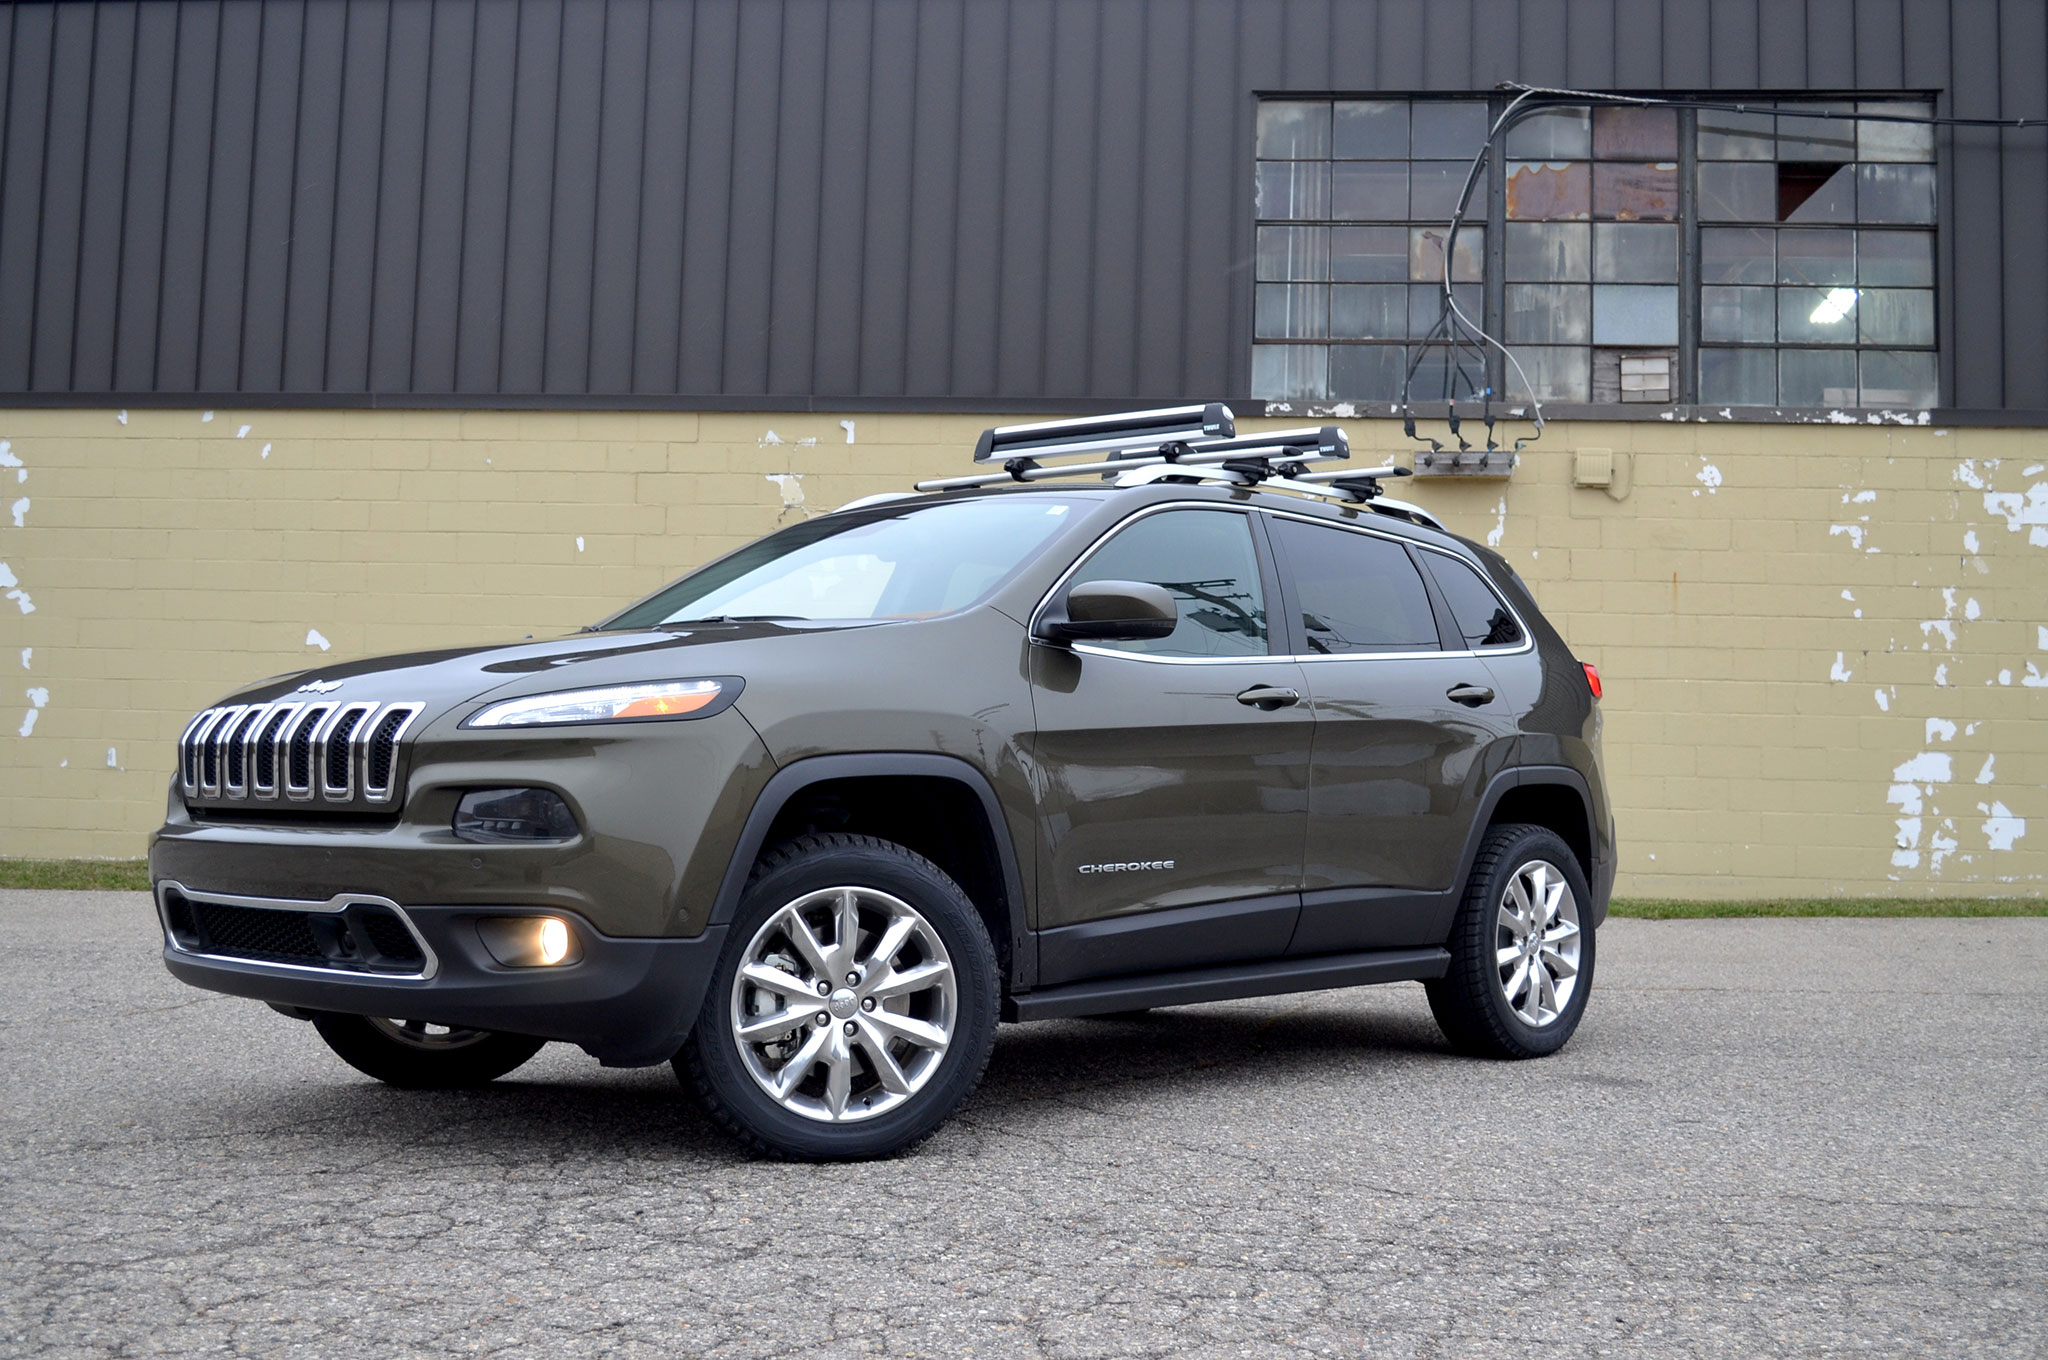 2014 Jeep Cherokee Front Three Quarter With Racks Wide Crop